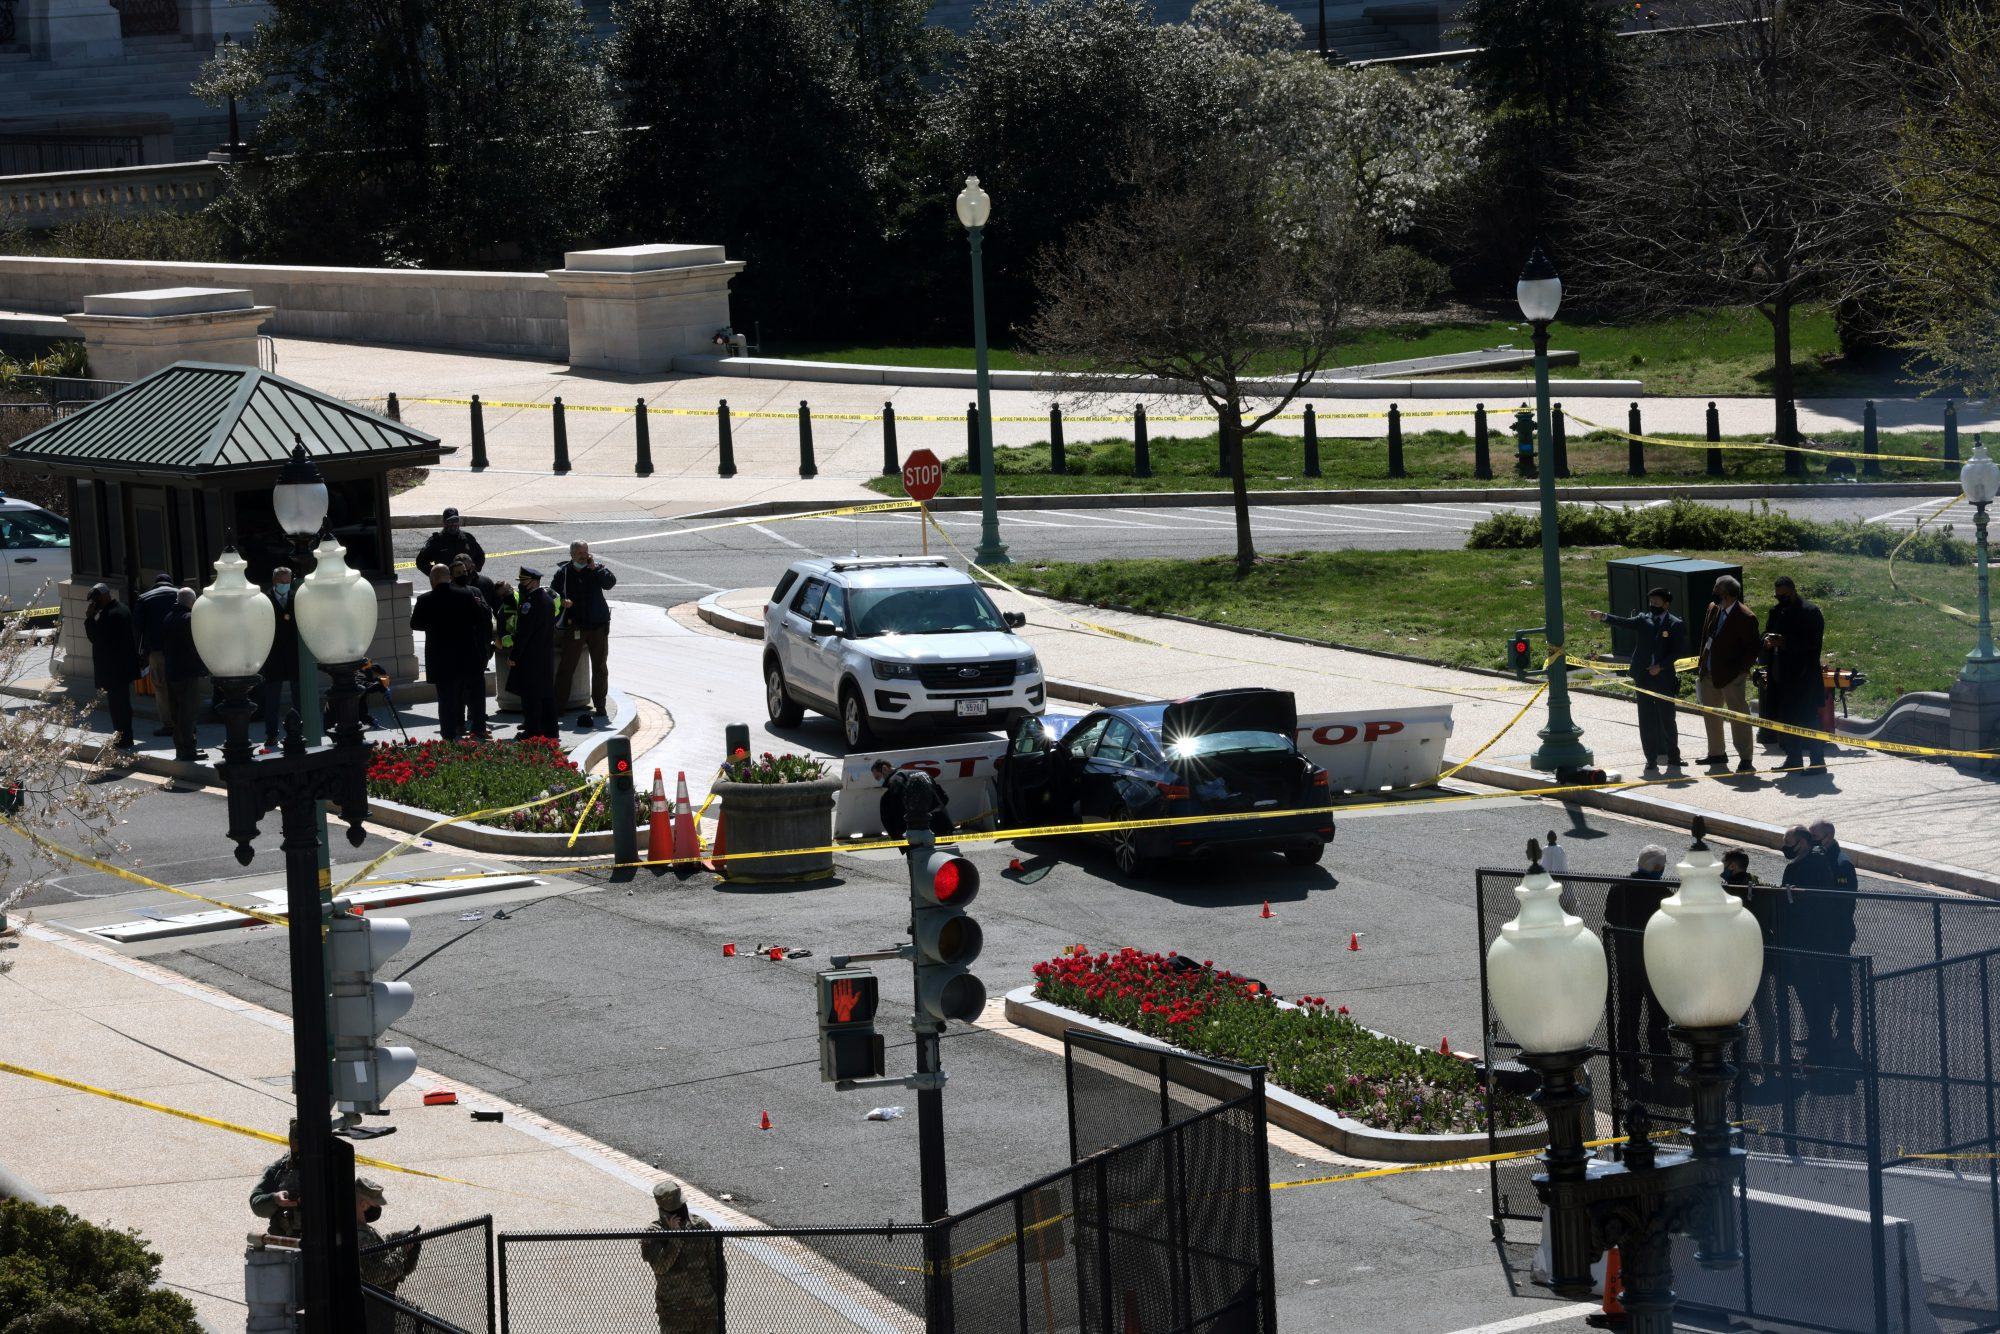 U.S. Capitol On Lockdown Due To External Security Threat